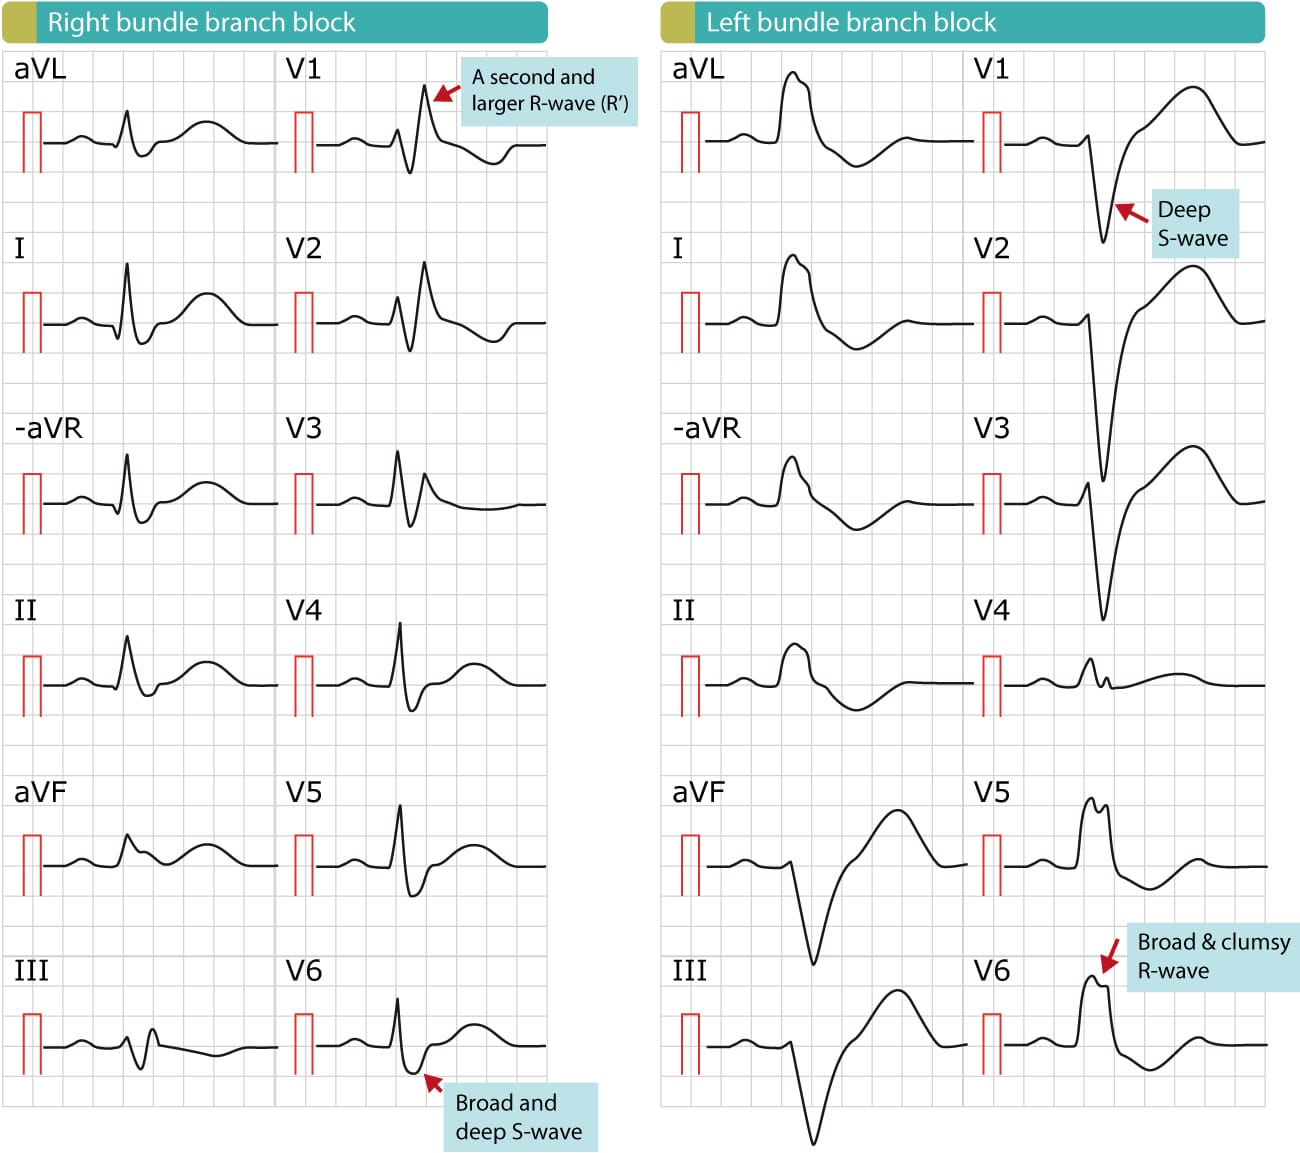 RBBB: Right bundle branch block